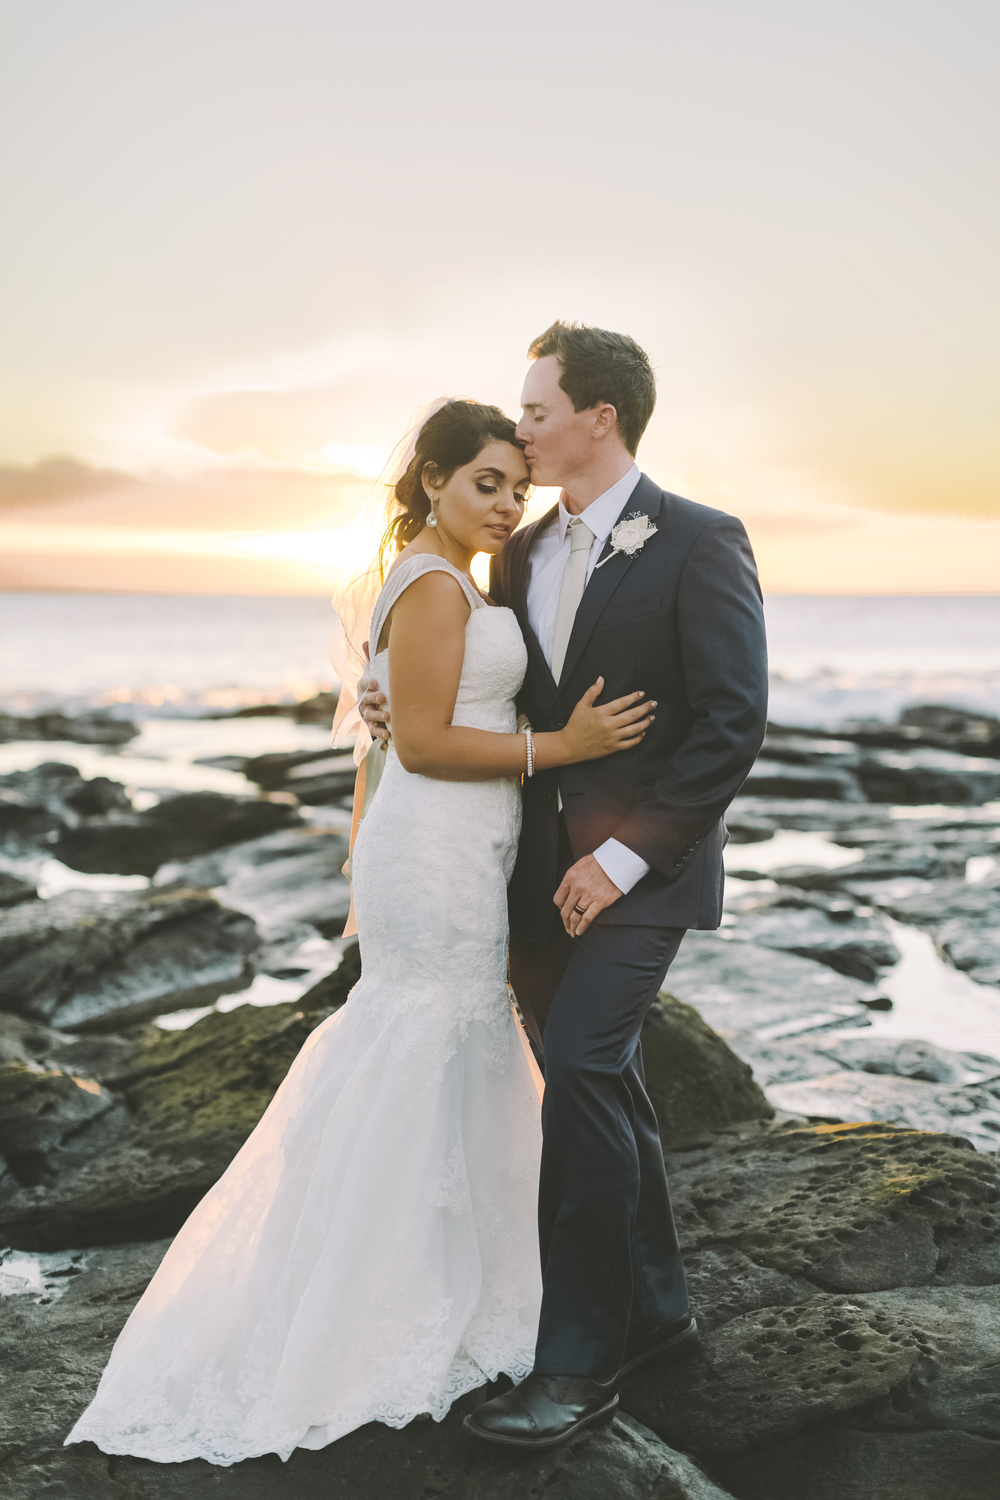 angie-diaz-photography-maui-hawaii-wedding-31.jpg